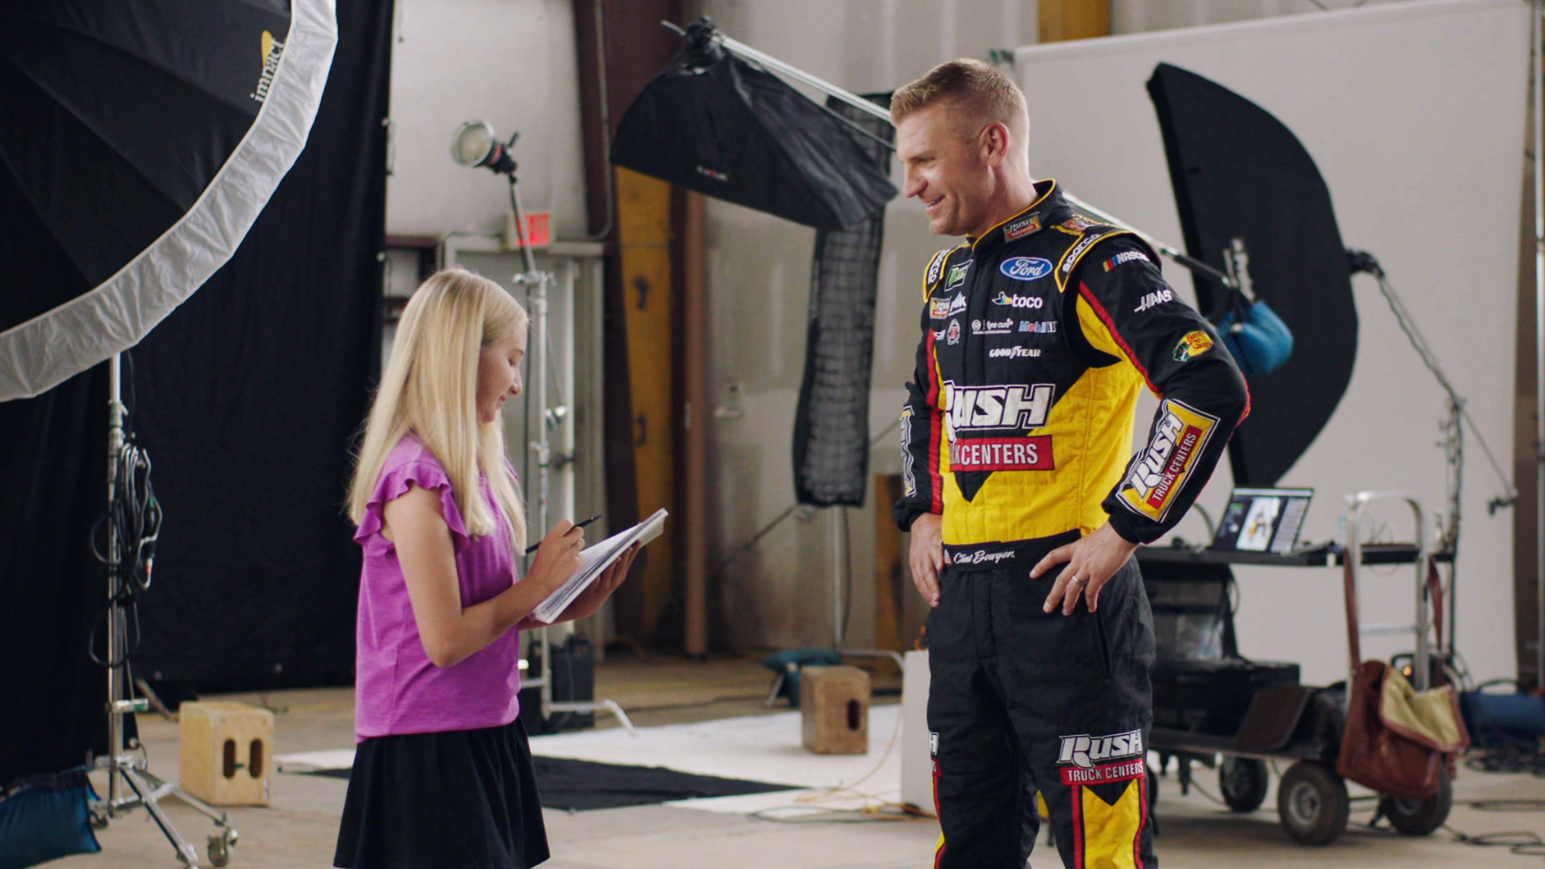 NASCAR driver Clint Bowyer quizzed by Kid Reporter – NBC Sports – Misc.